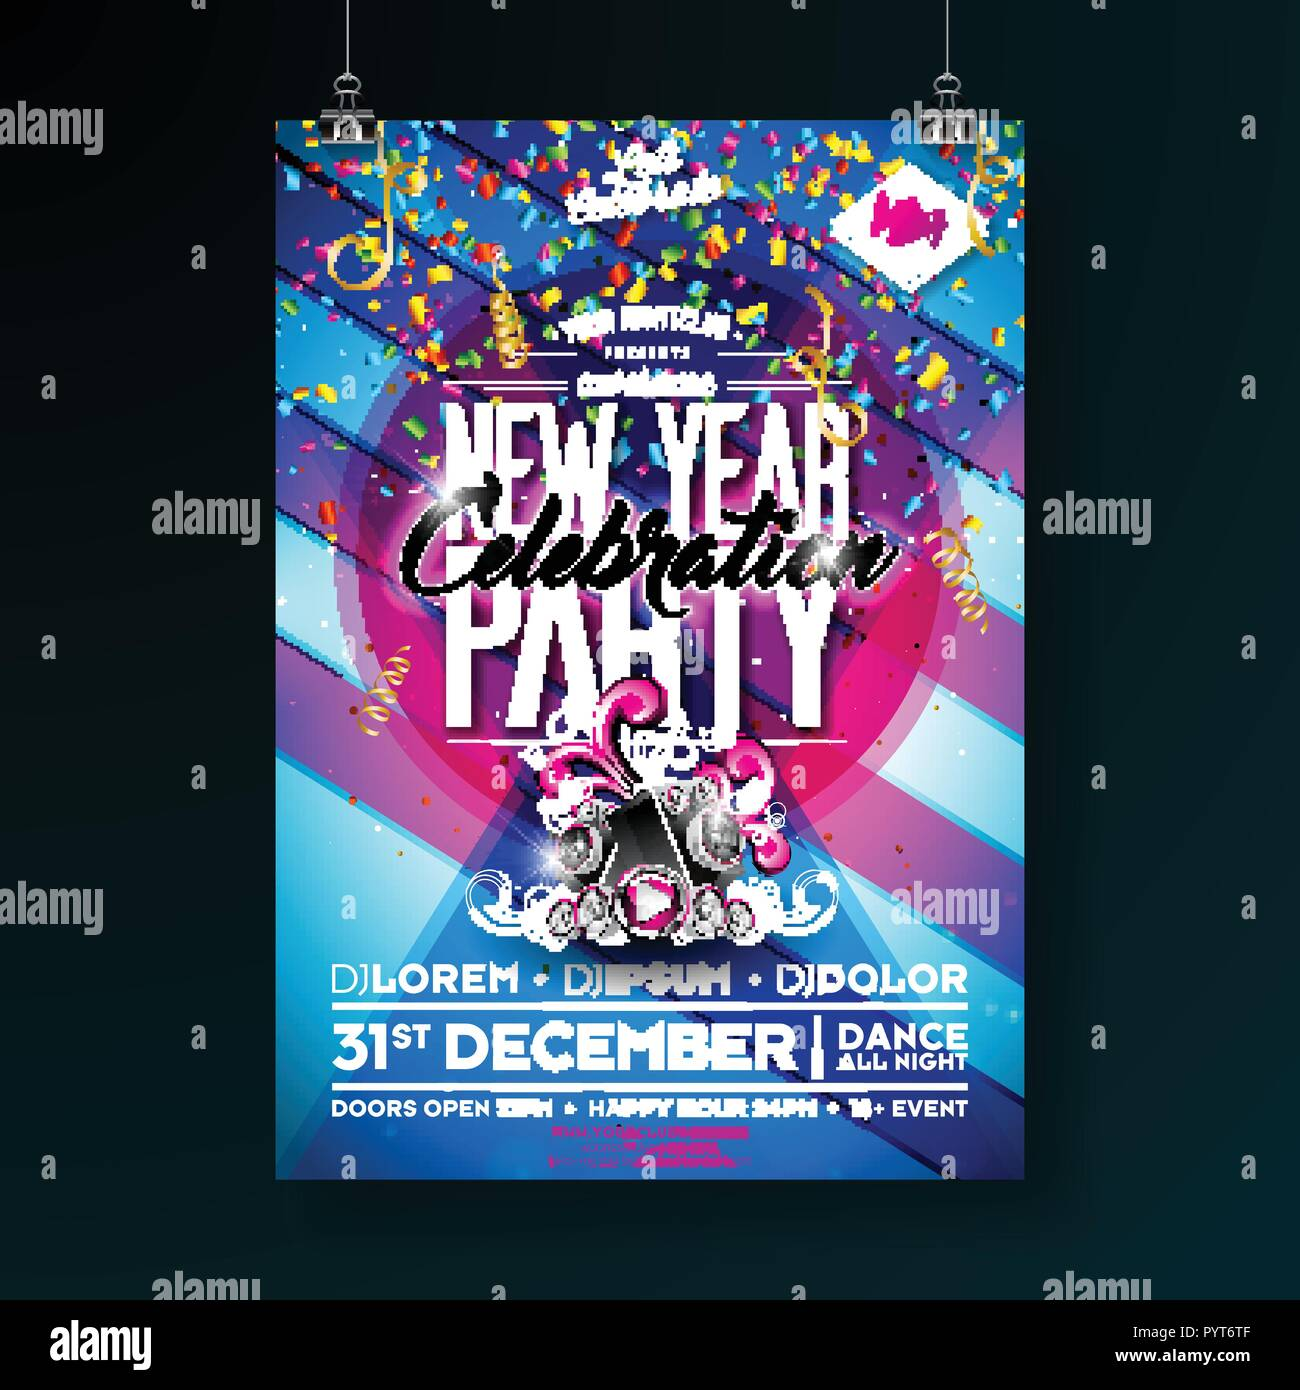 New Year Party Celebration Poster Template Illustration With